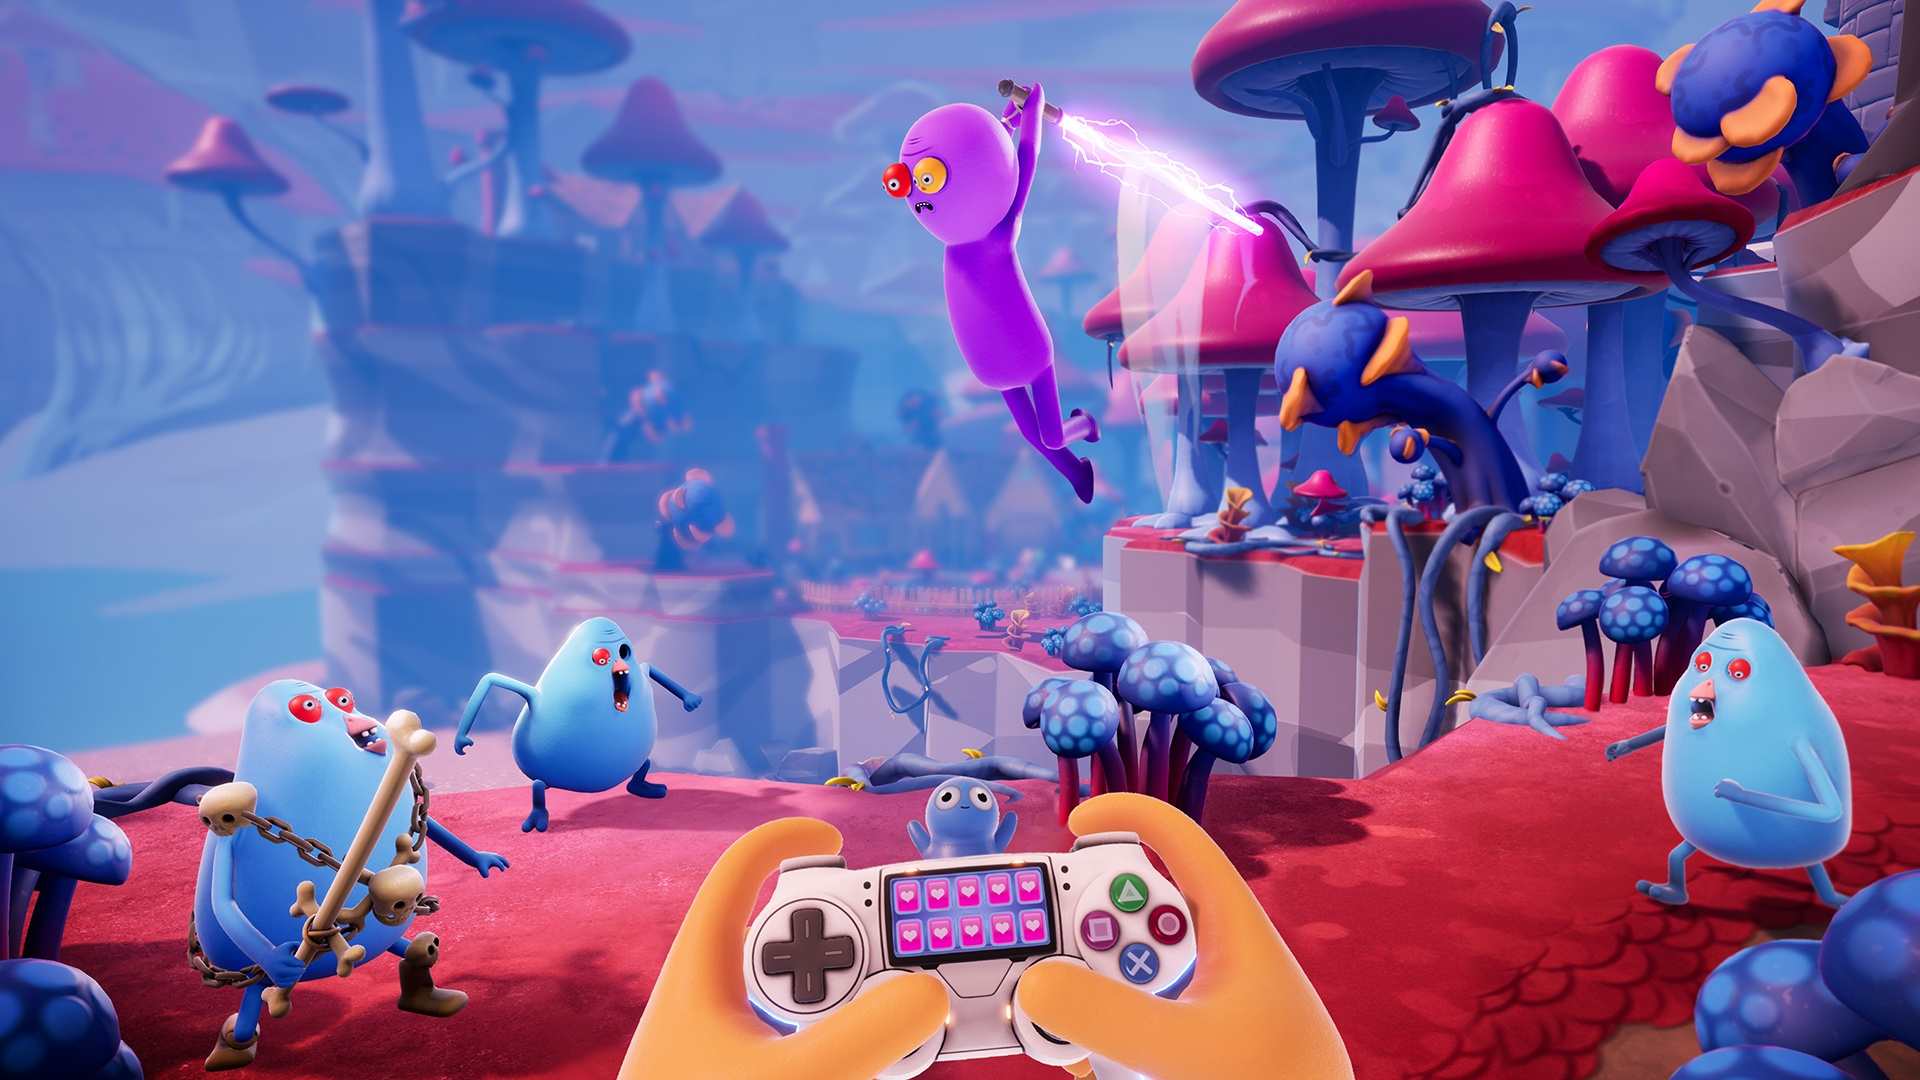 Action, adventure, Comedy, Gearbox Publishing, Gearbox Software, indie, PS4, PS4 Review, Rating 9/10, Squanch Games, Trover Saves the Universe, Trover Saves the Universe Review, VR